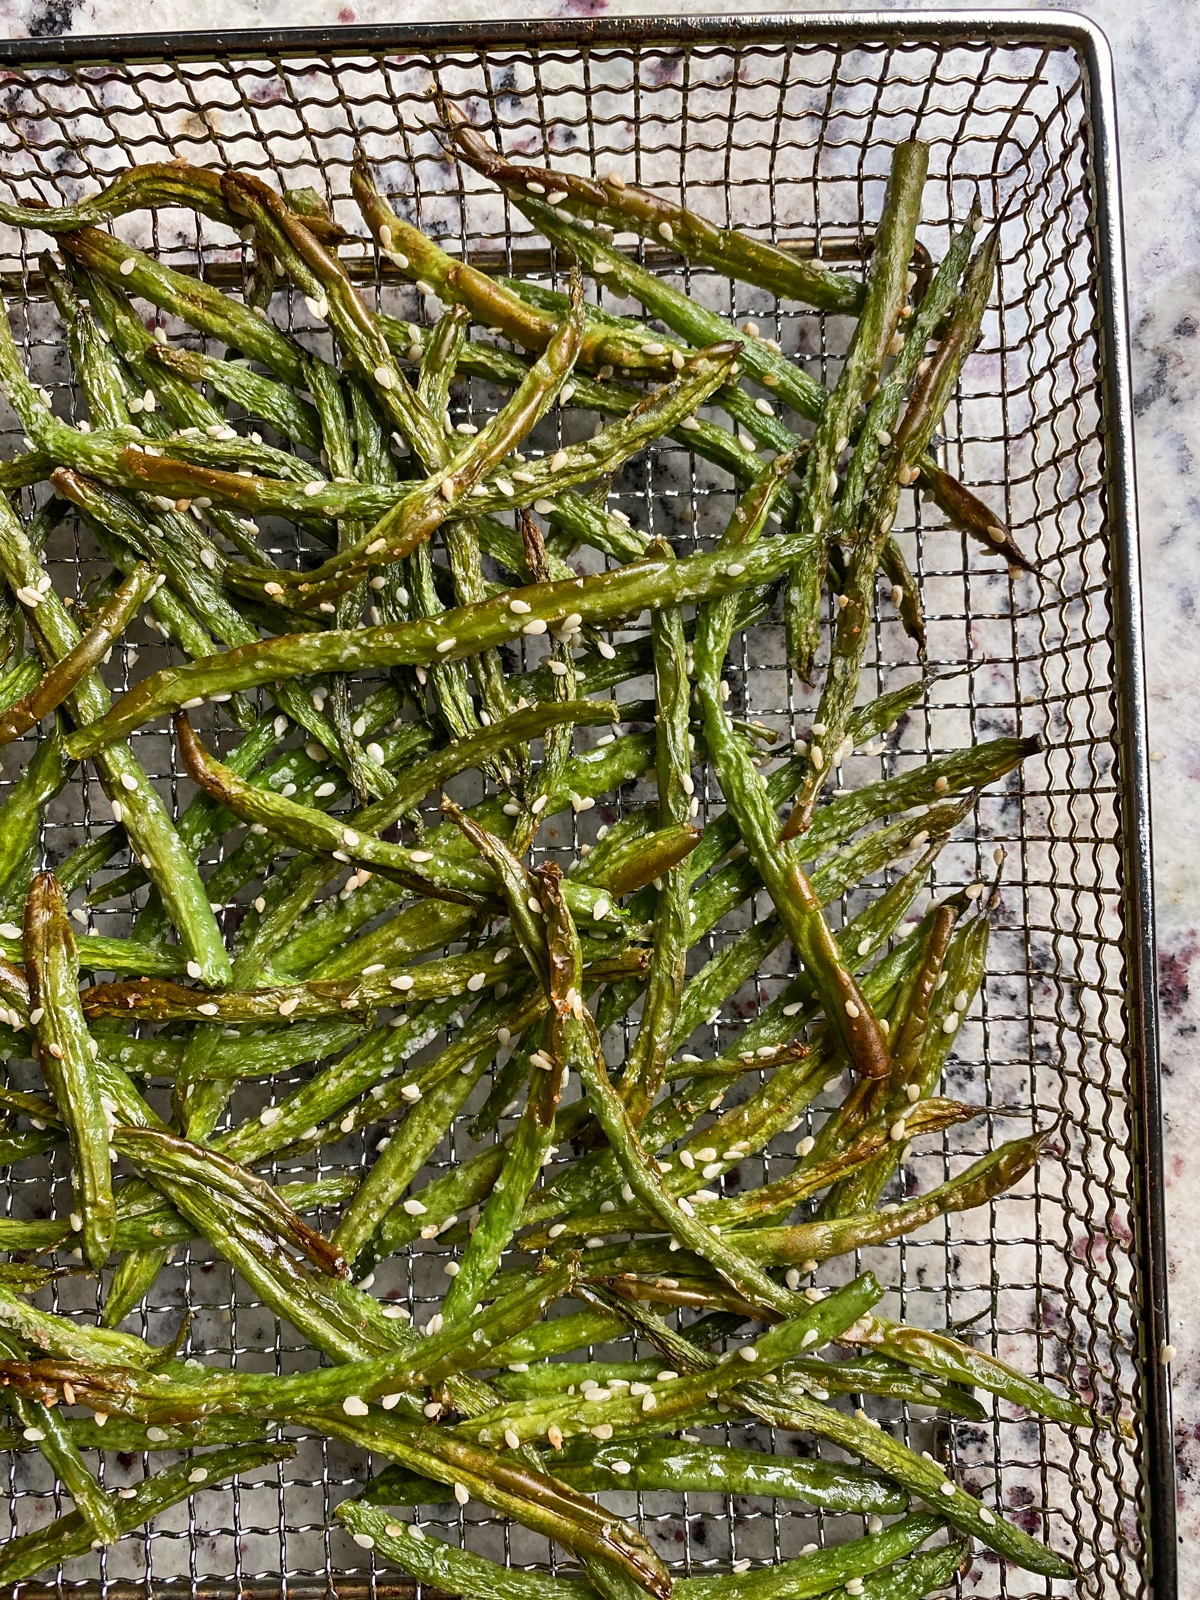 cooked green beans in air fryer basket